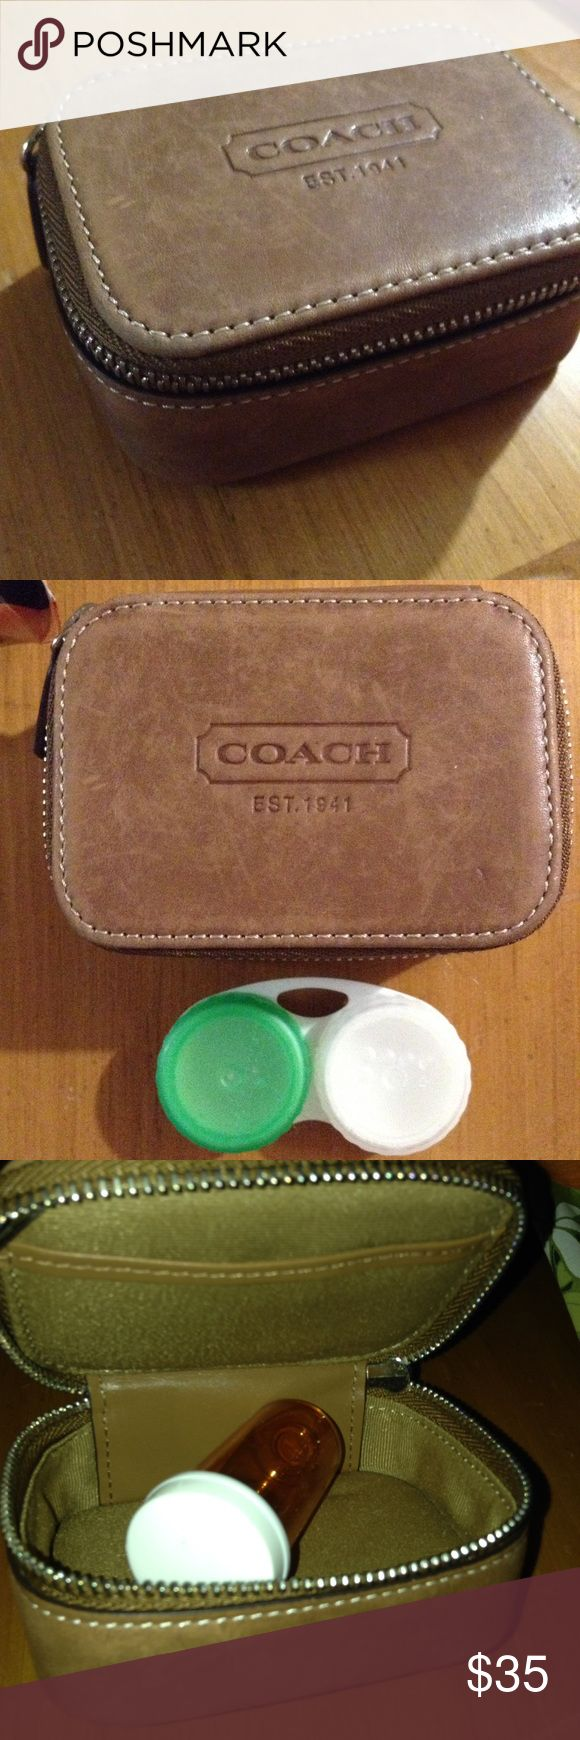 Coach Travel Pill/Jewelry Case Pre owned. Great condition, see pictures. Only comes with one pill bottle. 100% authentic. Can be used as jewelry, vitamin, pill, or contact lens box! Pet and smoke free home. Leather, brown. Make an offer? (: Thanks for checking out the listing! Contact lens case only in photo for size comparison! It does not come with the case, only the pill bottle comes with it! Coach Bags Travel Bags